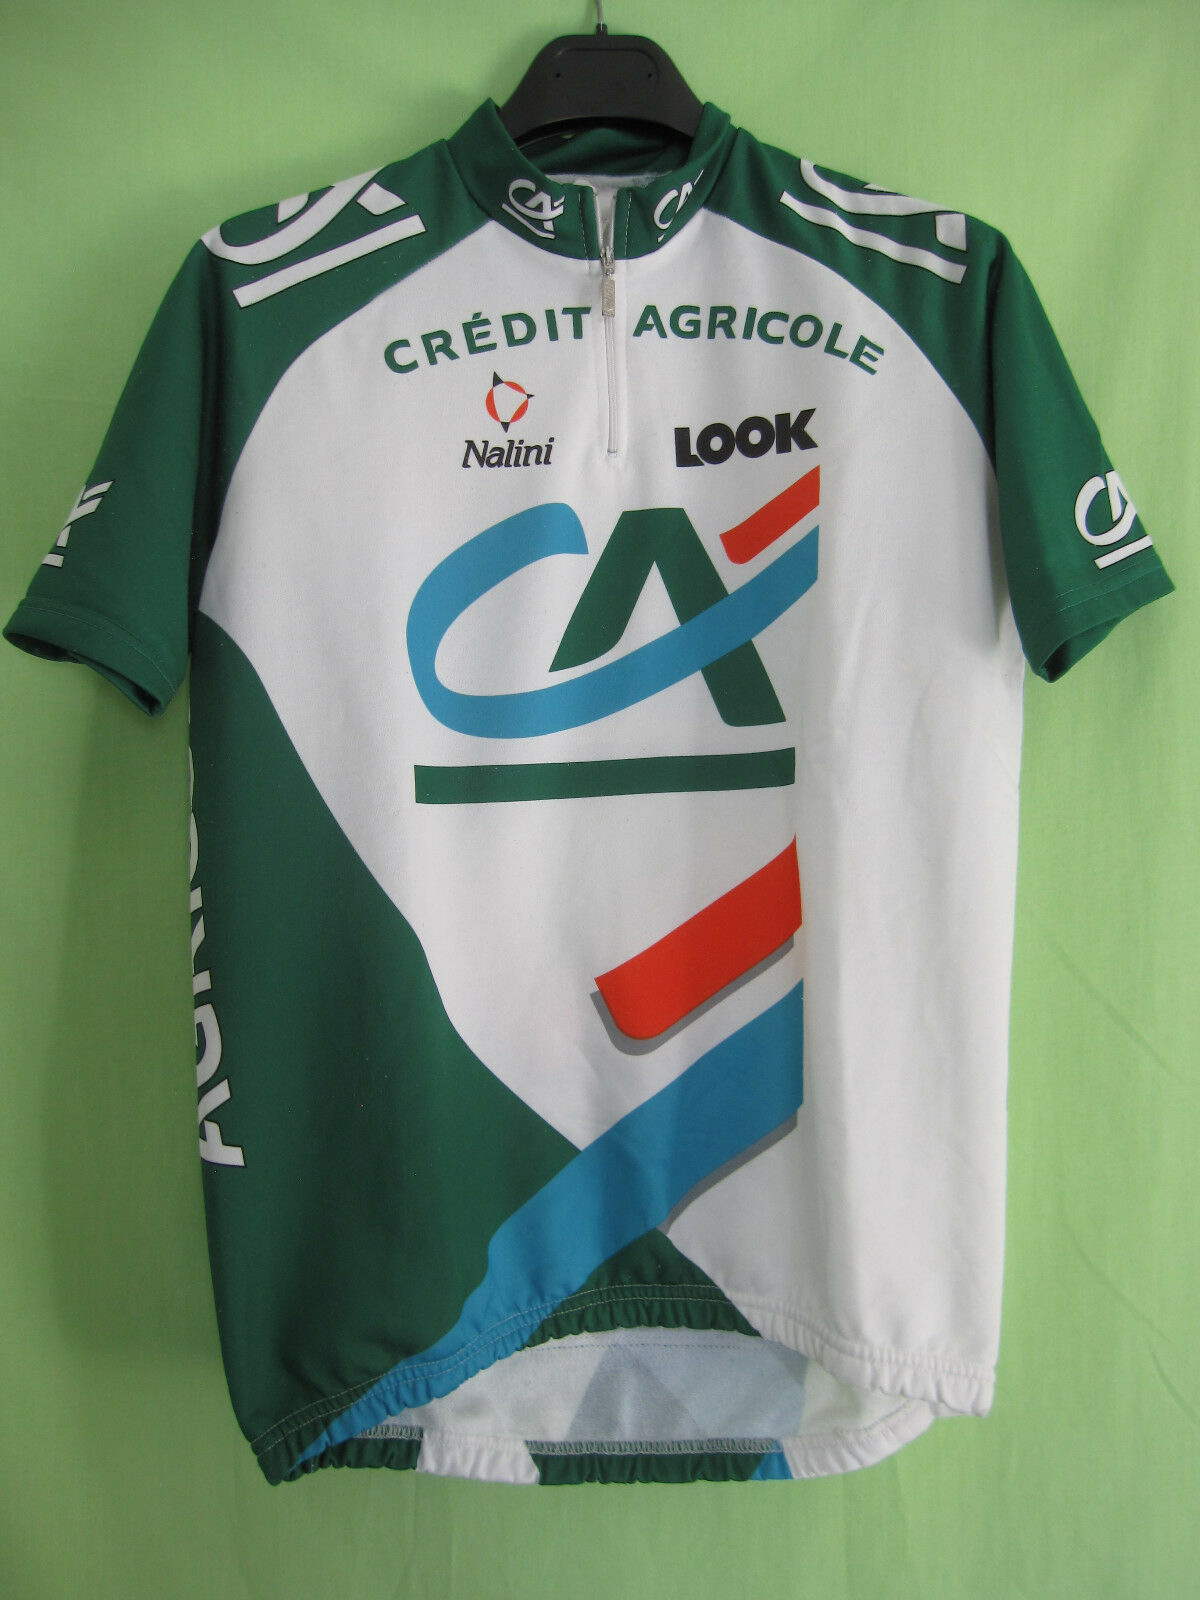 Maillot cycliste Credit Agricole LOOK Tour 1999 Nalini Jersey cycling - 4   L